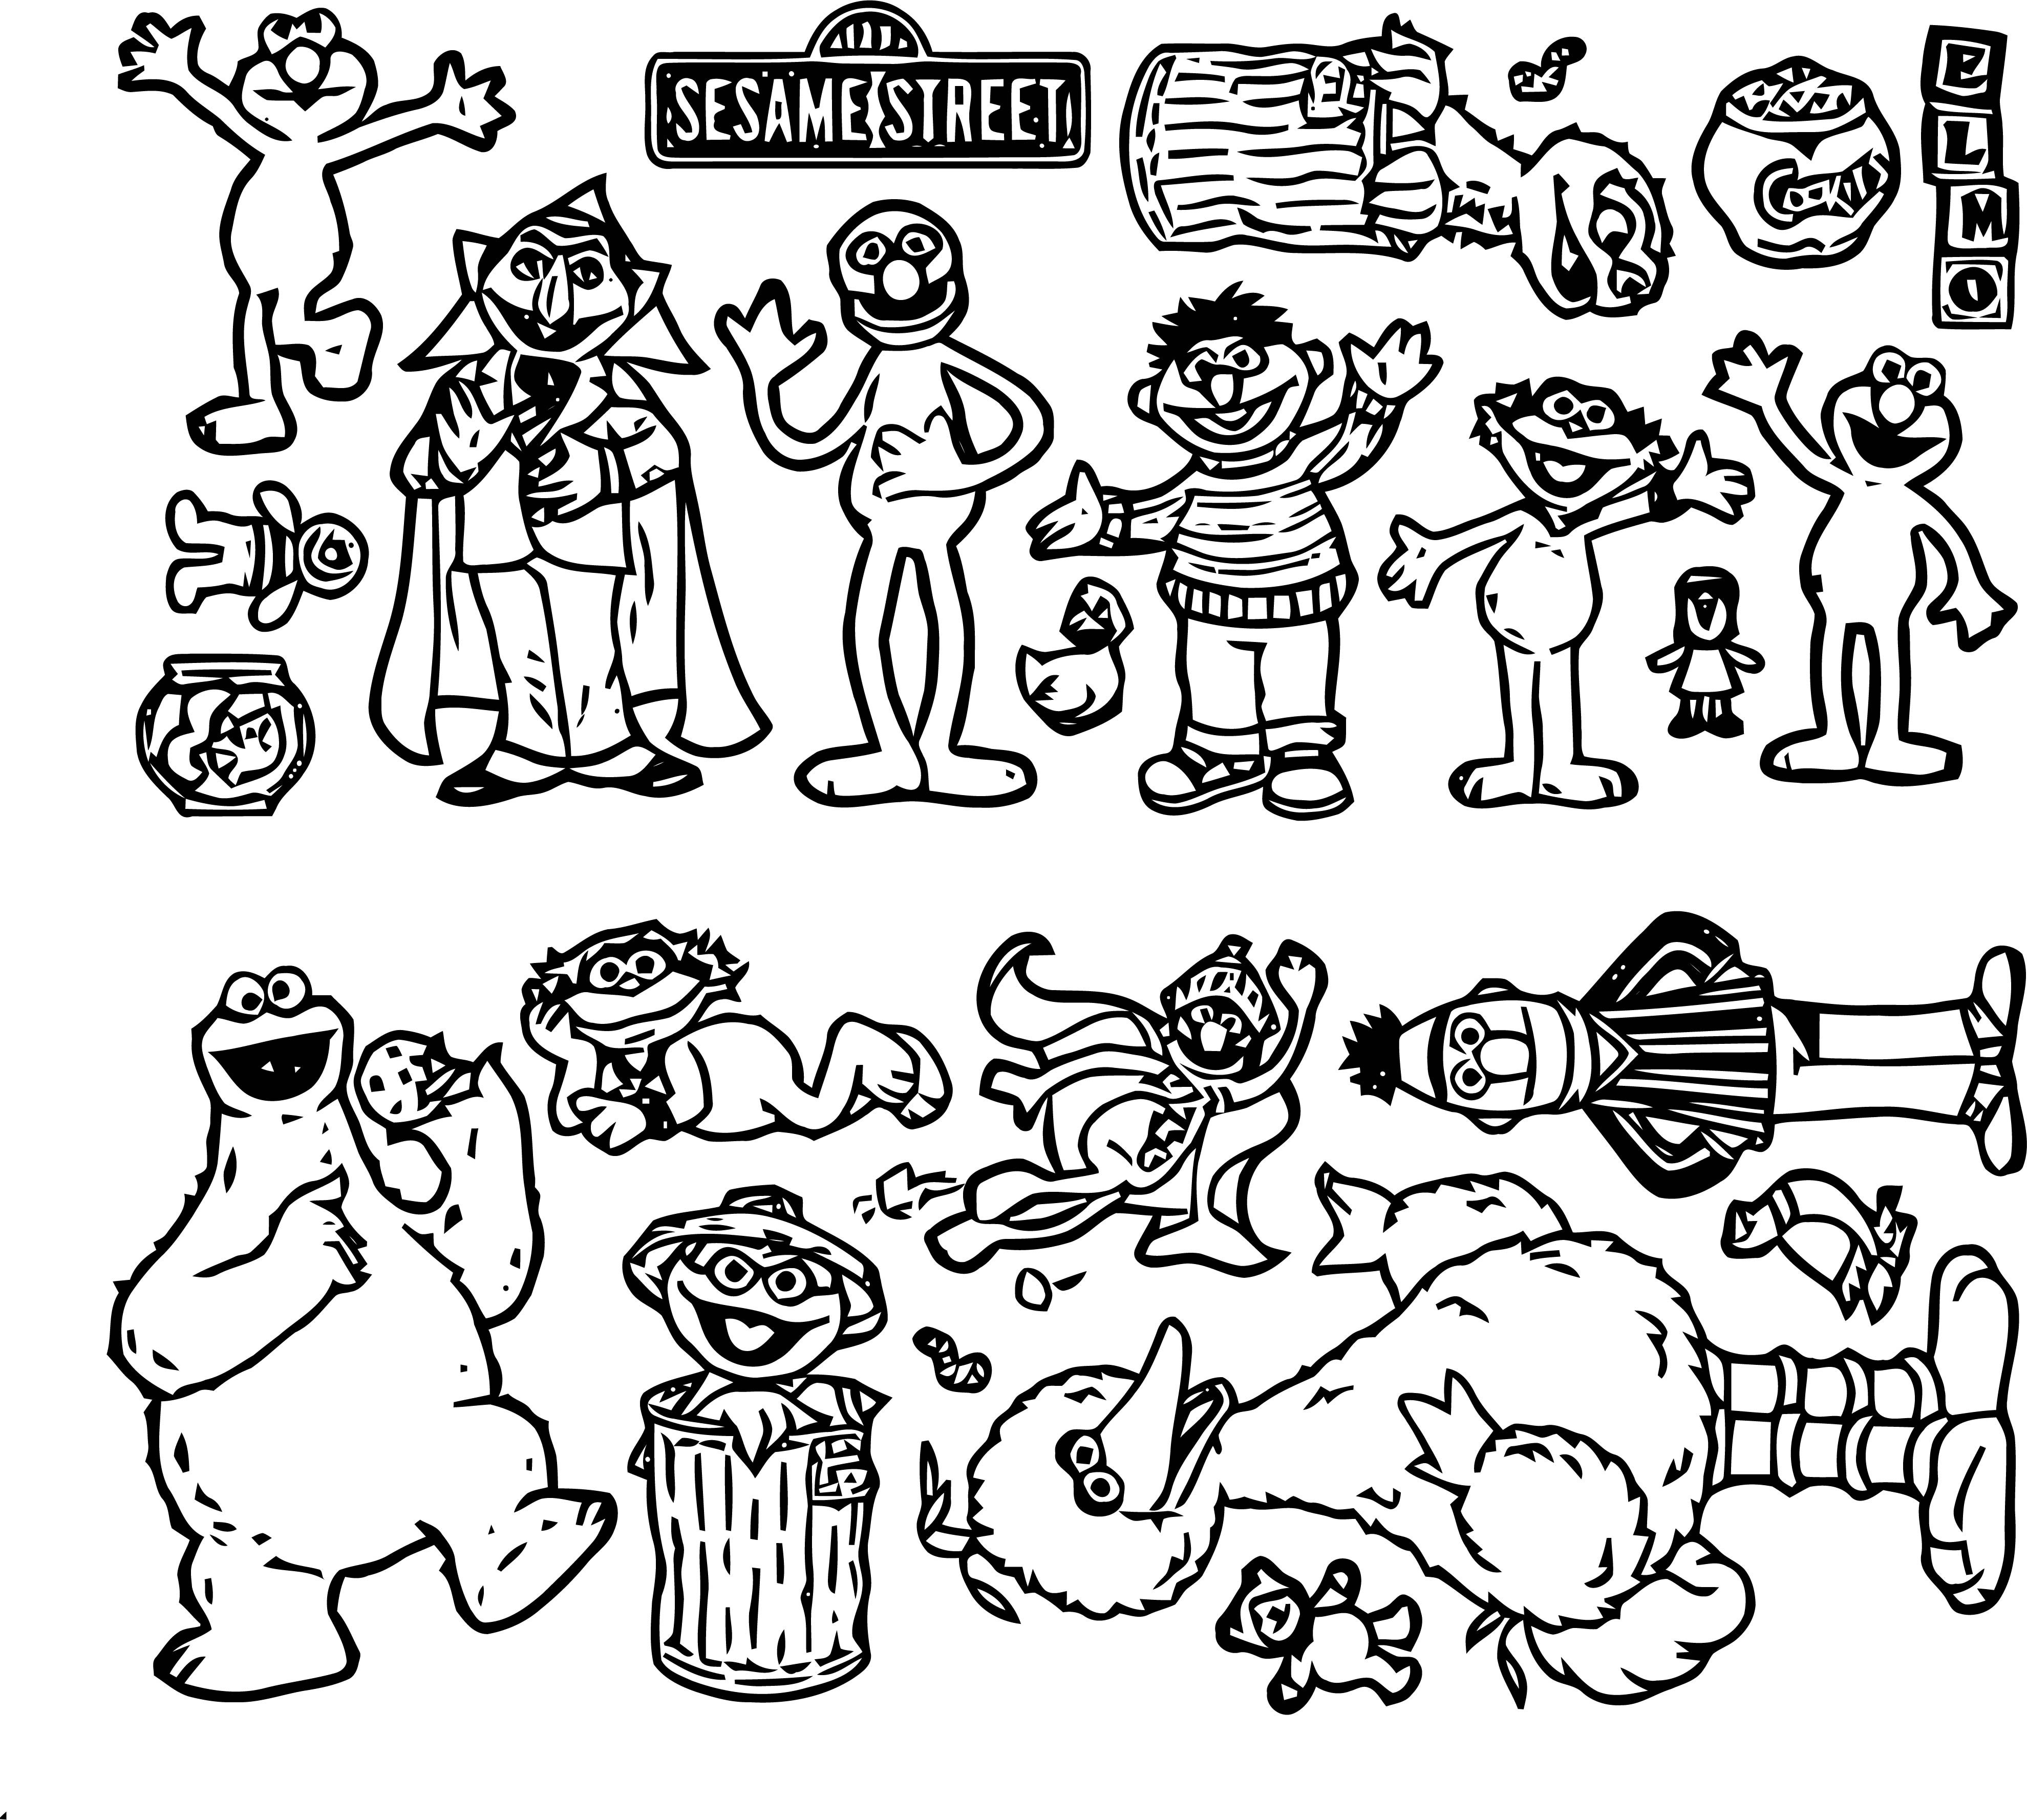 Sesame Street Minimal Characters Coloring Page